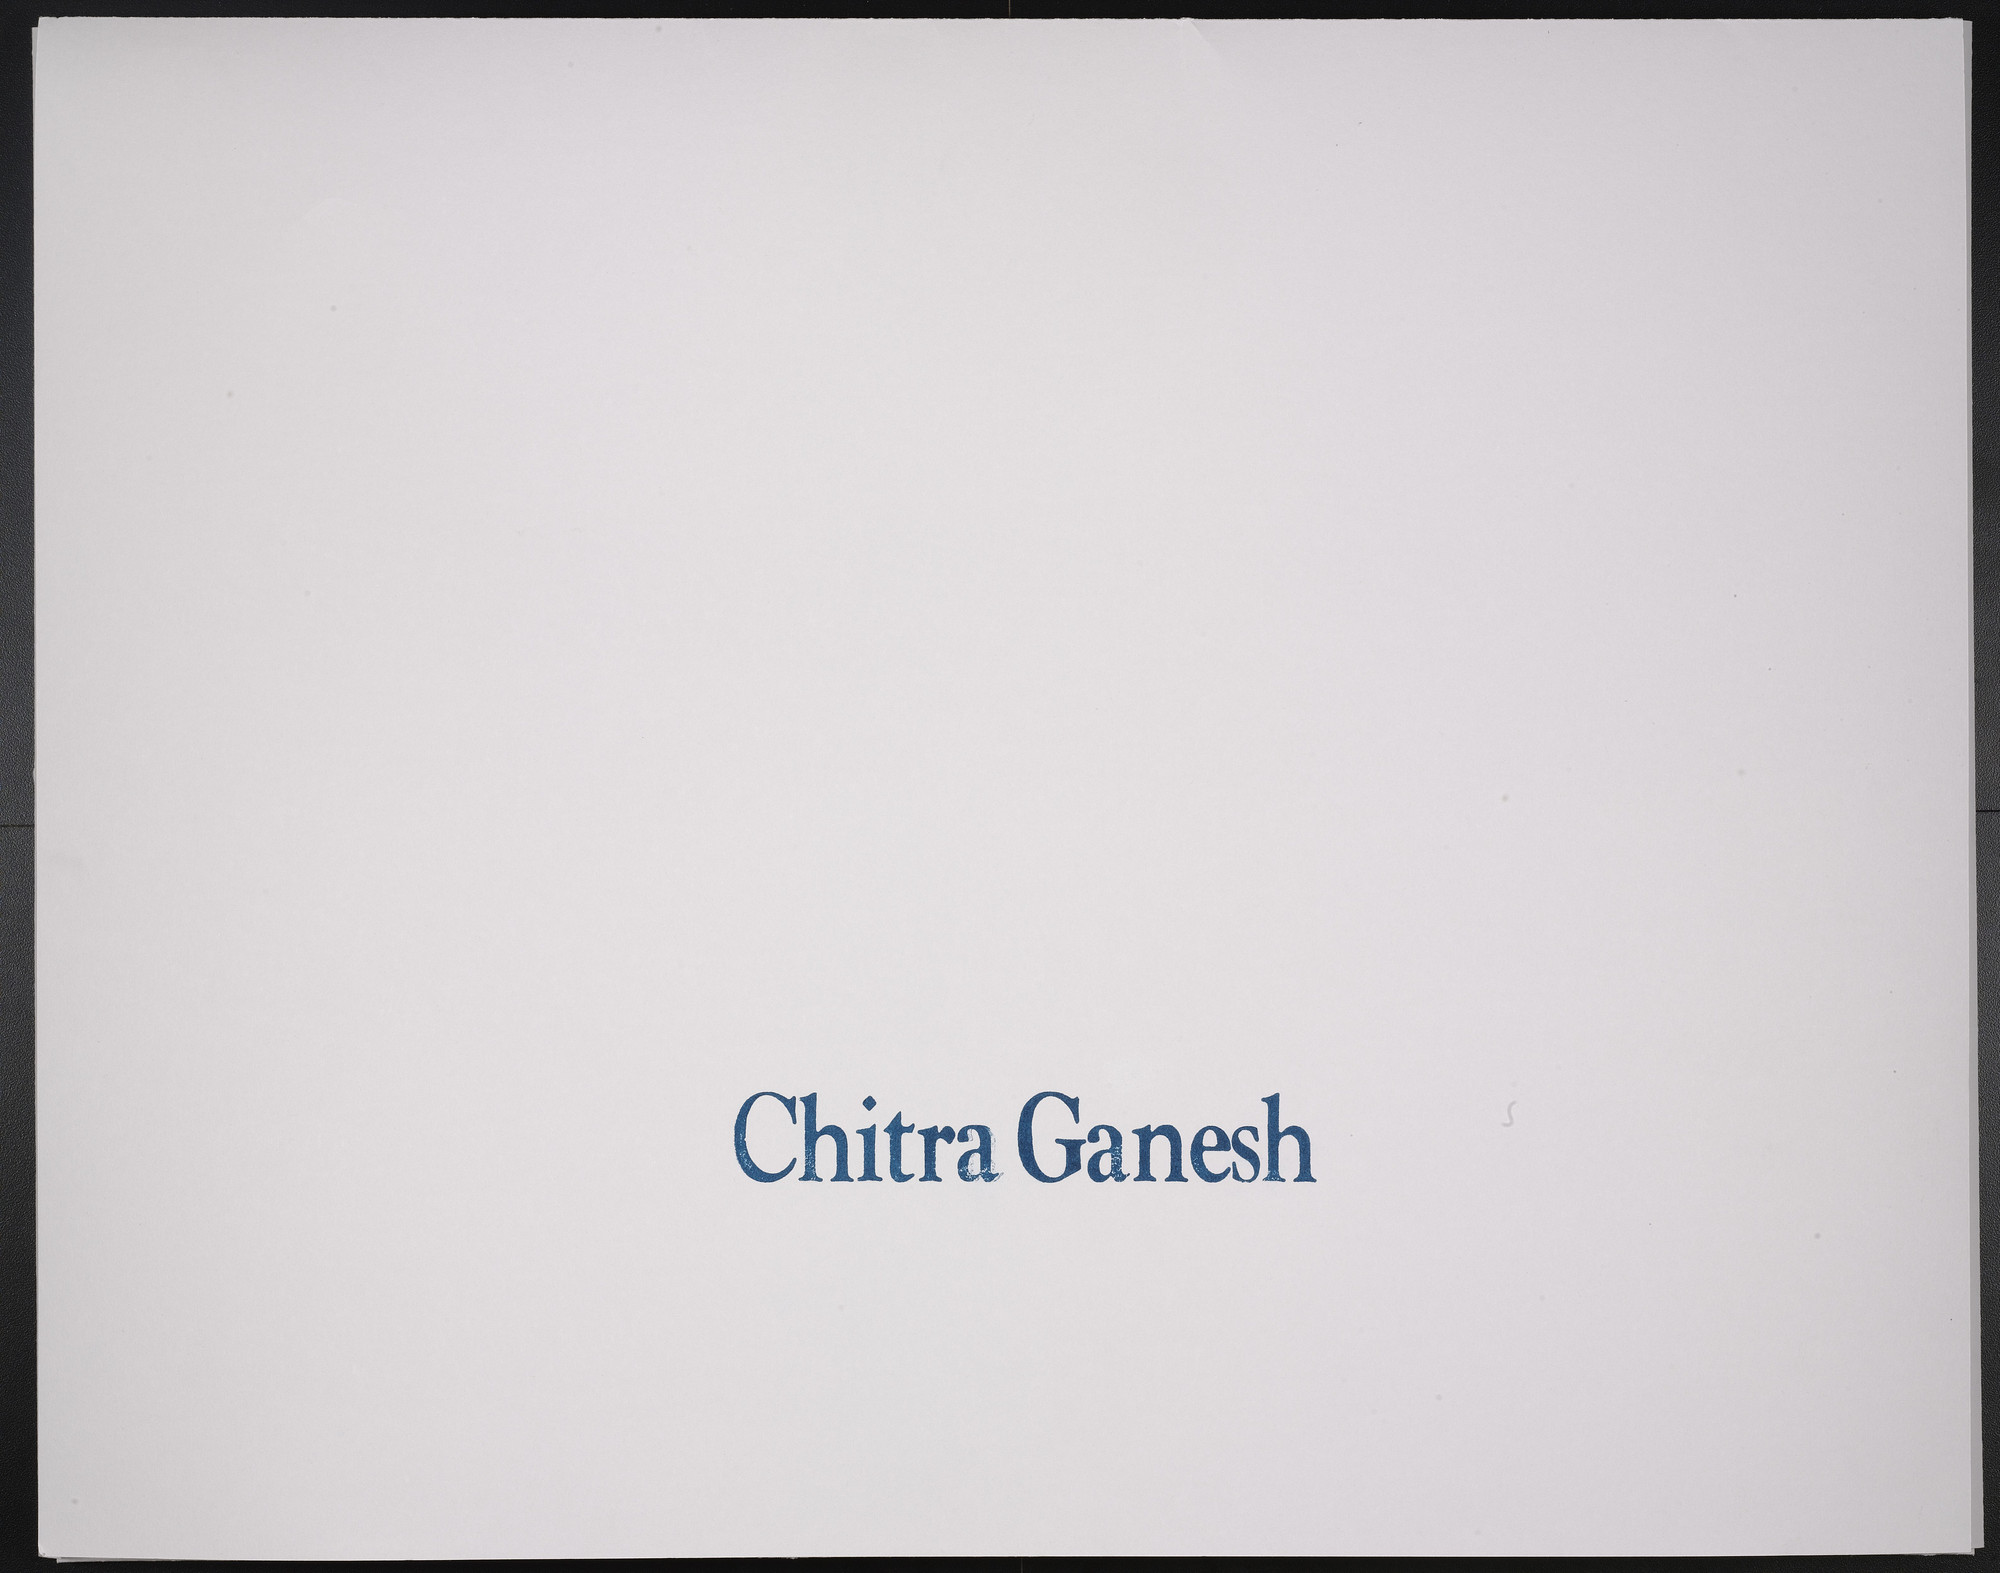 Chitra Ganesh. Delicate Line (Corpse she was holding): Her head in the flames?. 2009